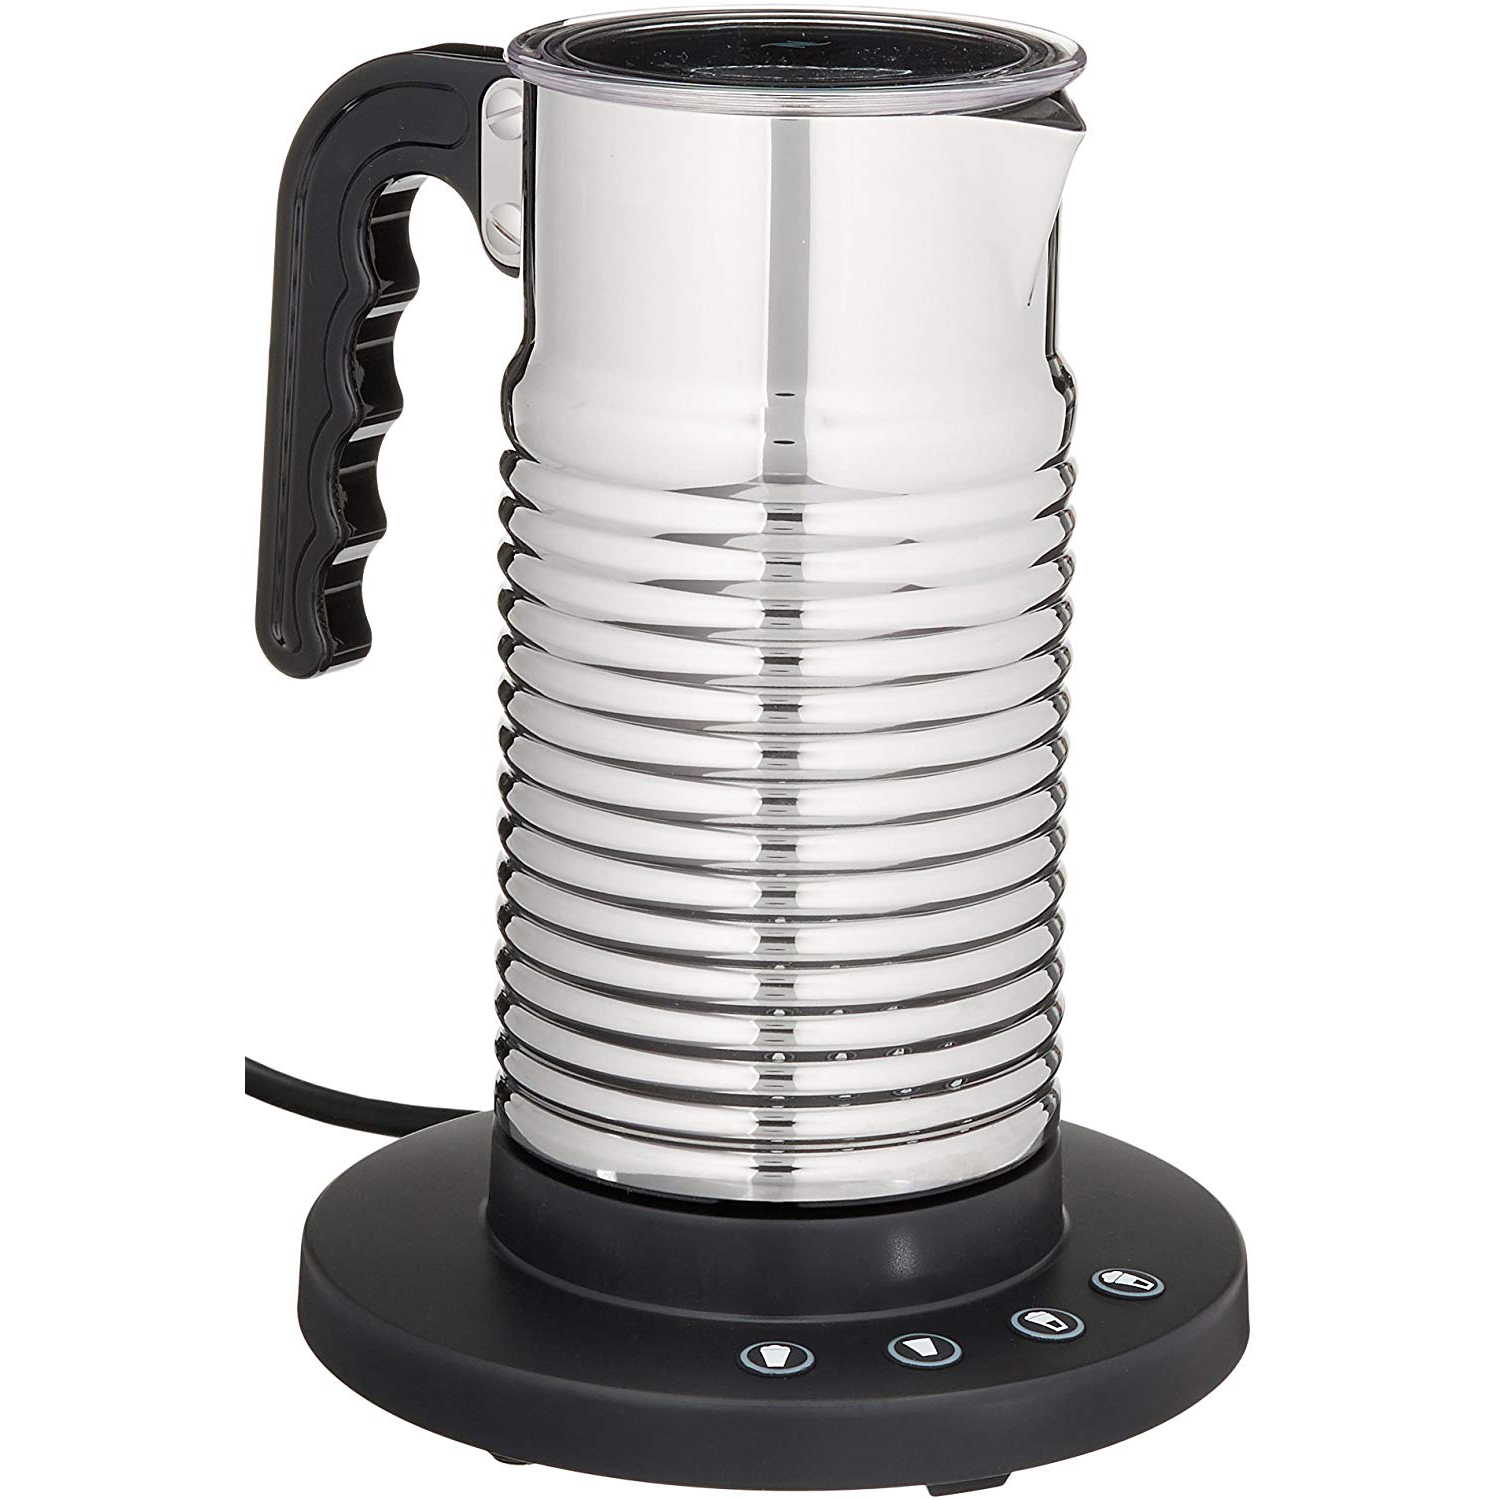 An electric milk frother from Nespresso